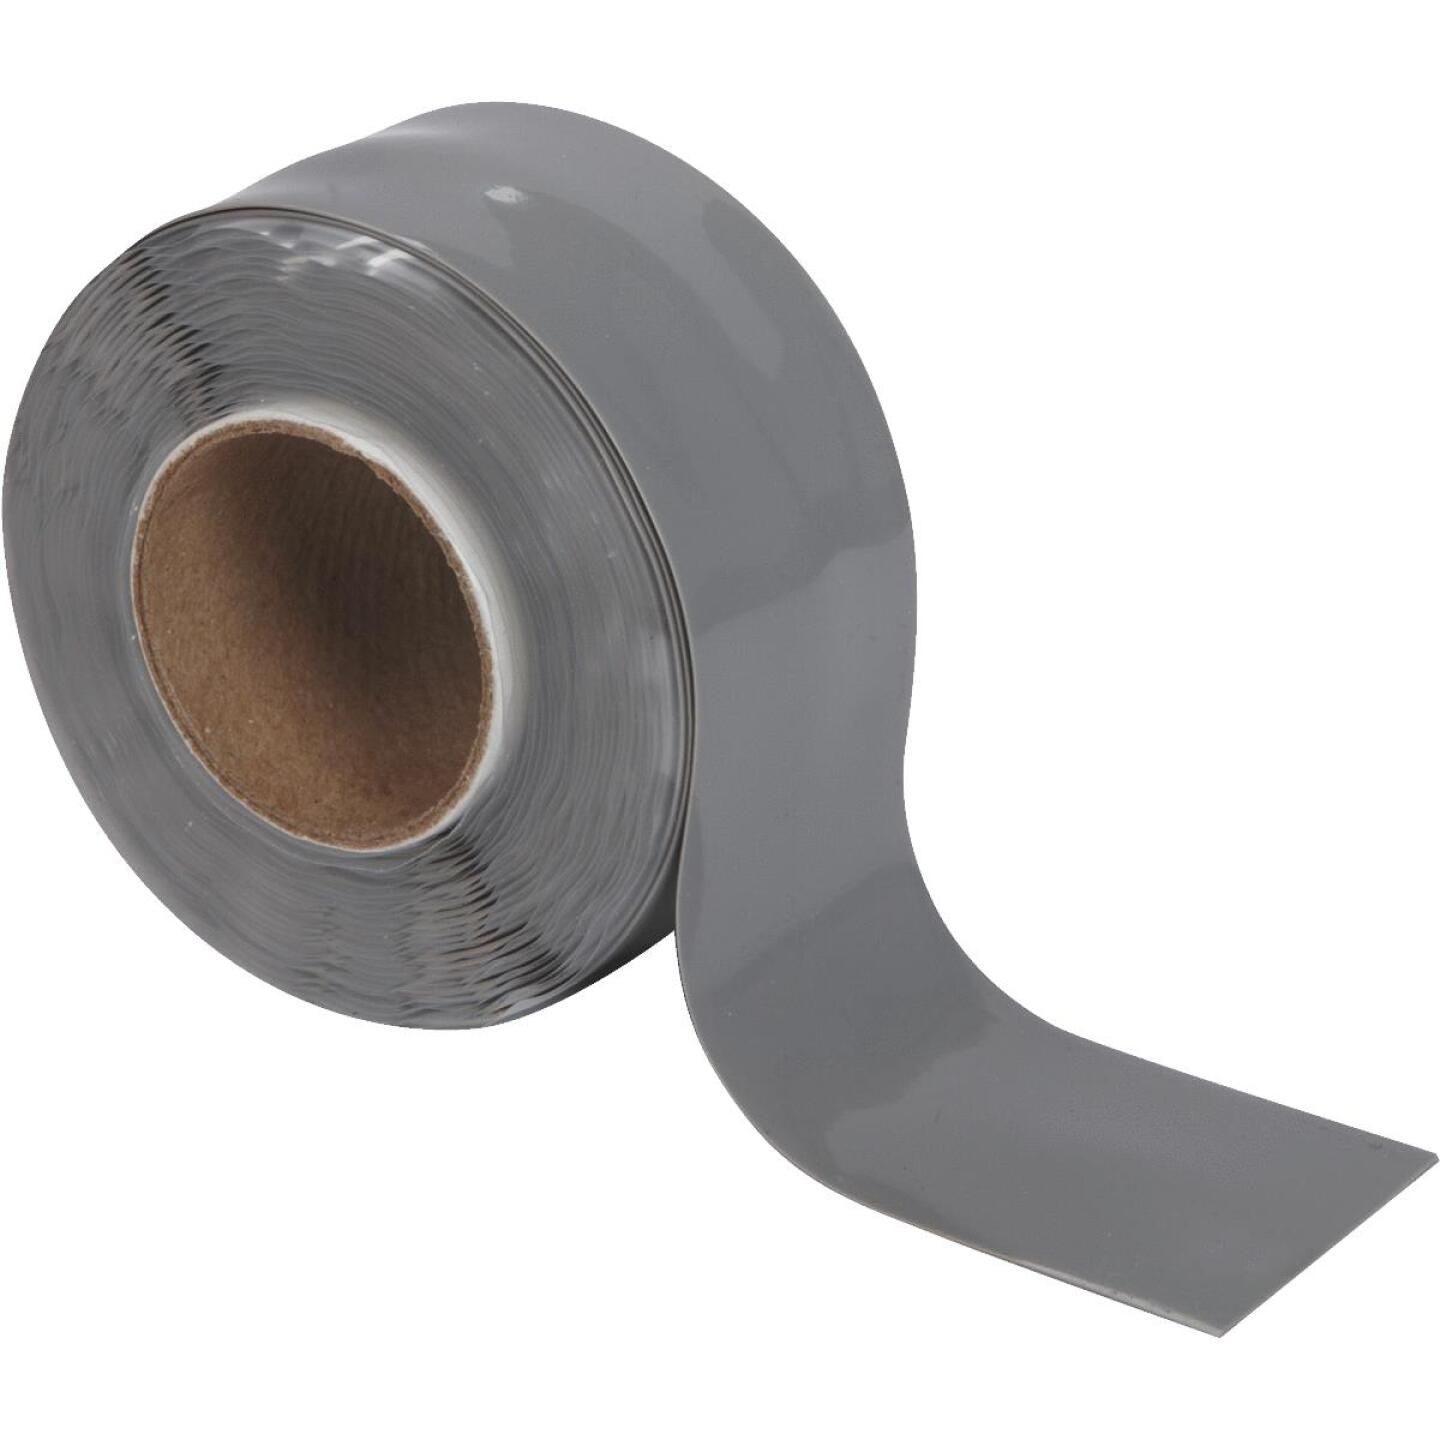 Gardner Bender Gray 1 In. x 10 Ft. Self-Sealing Tape Image 2